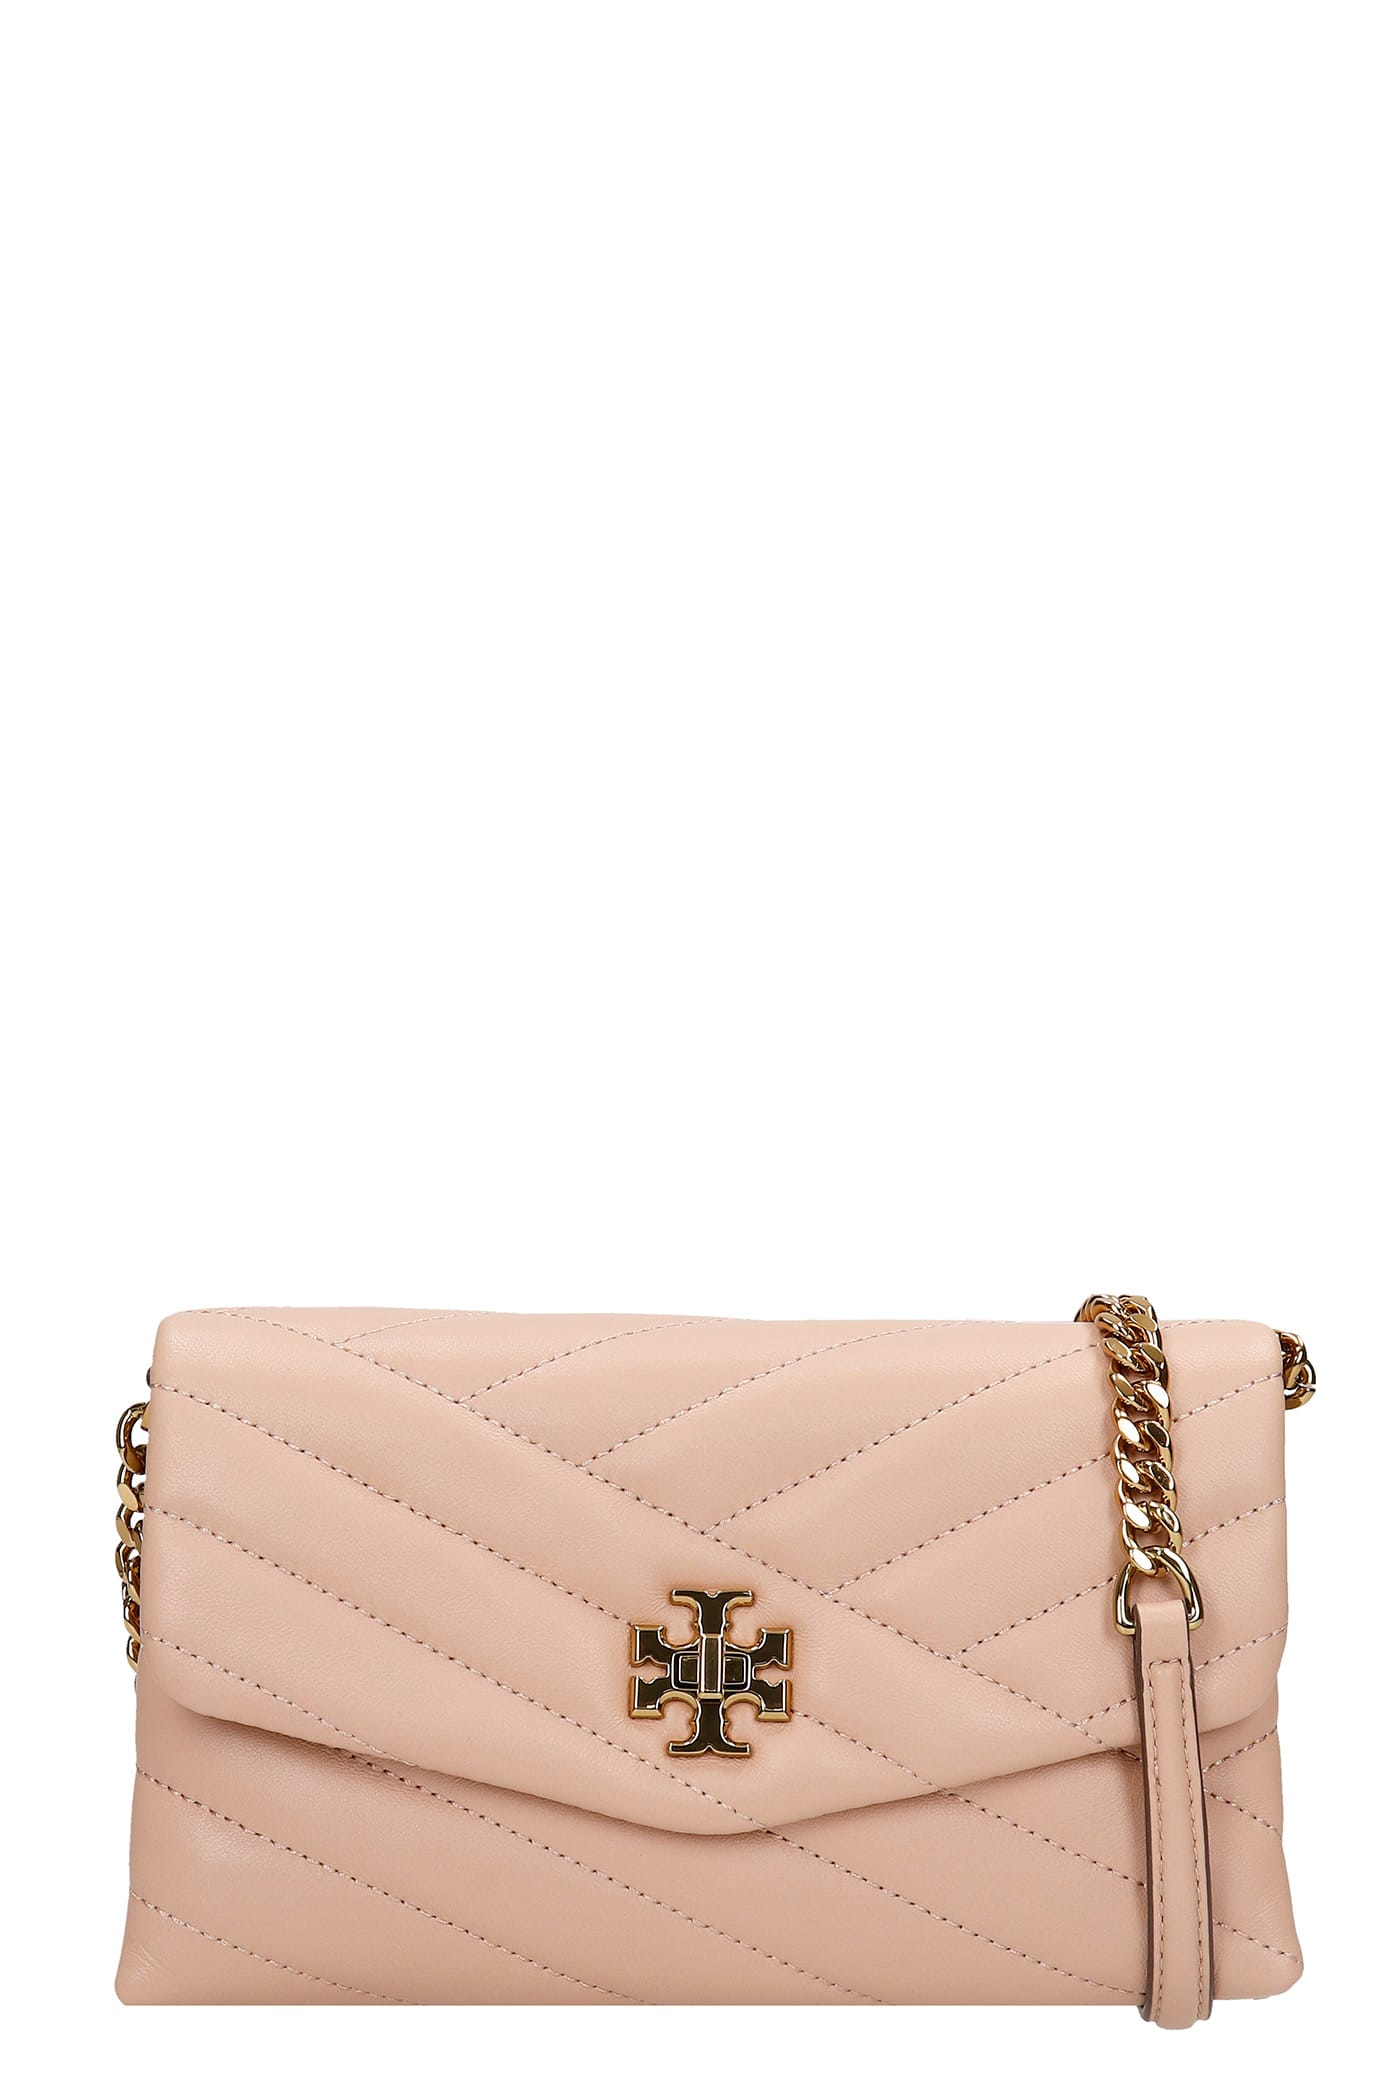 Tory Burch Shoulder Bag In Powder Leather